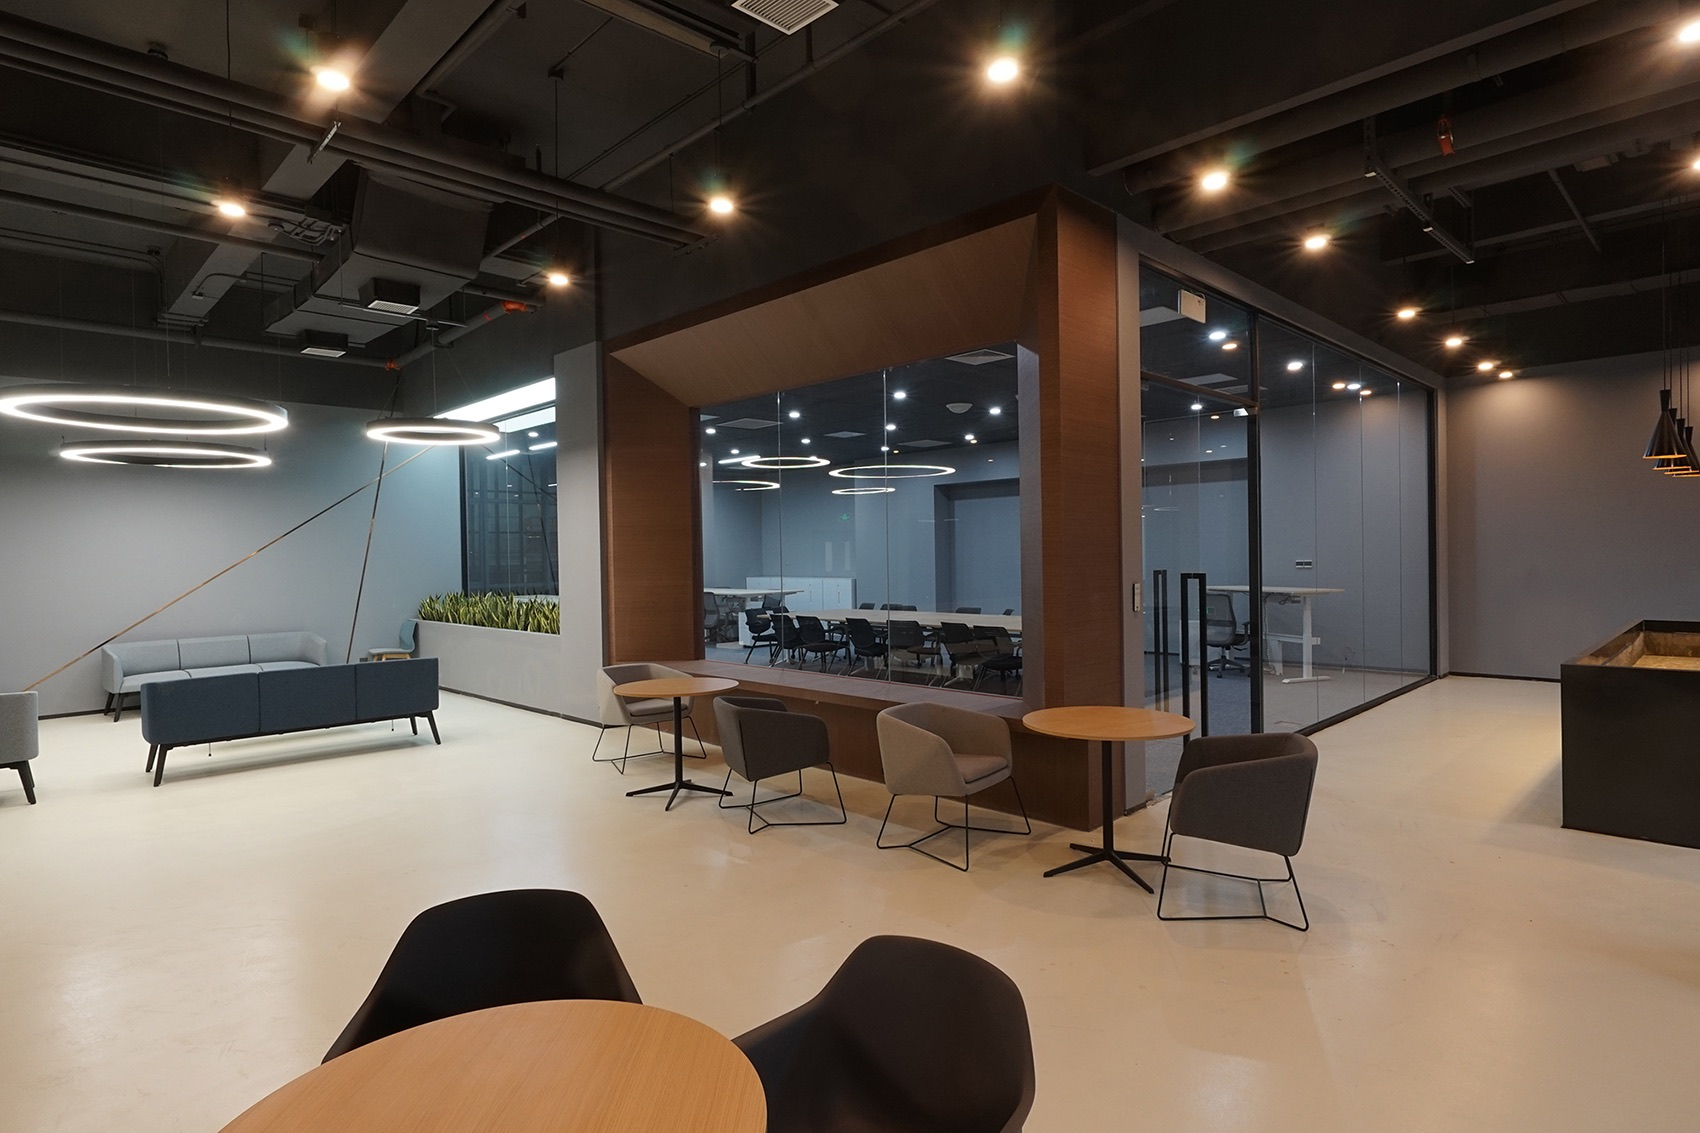 byton-nanjing-phase-two-office-12